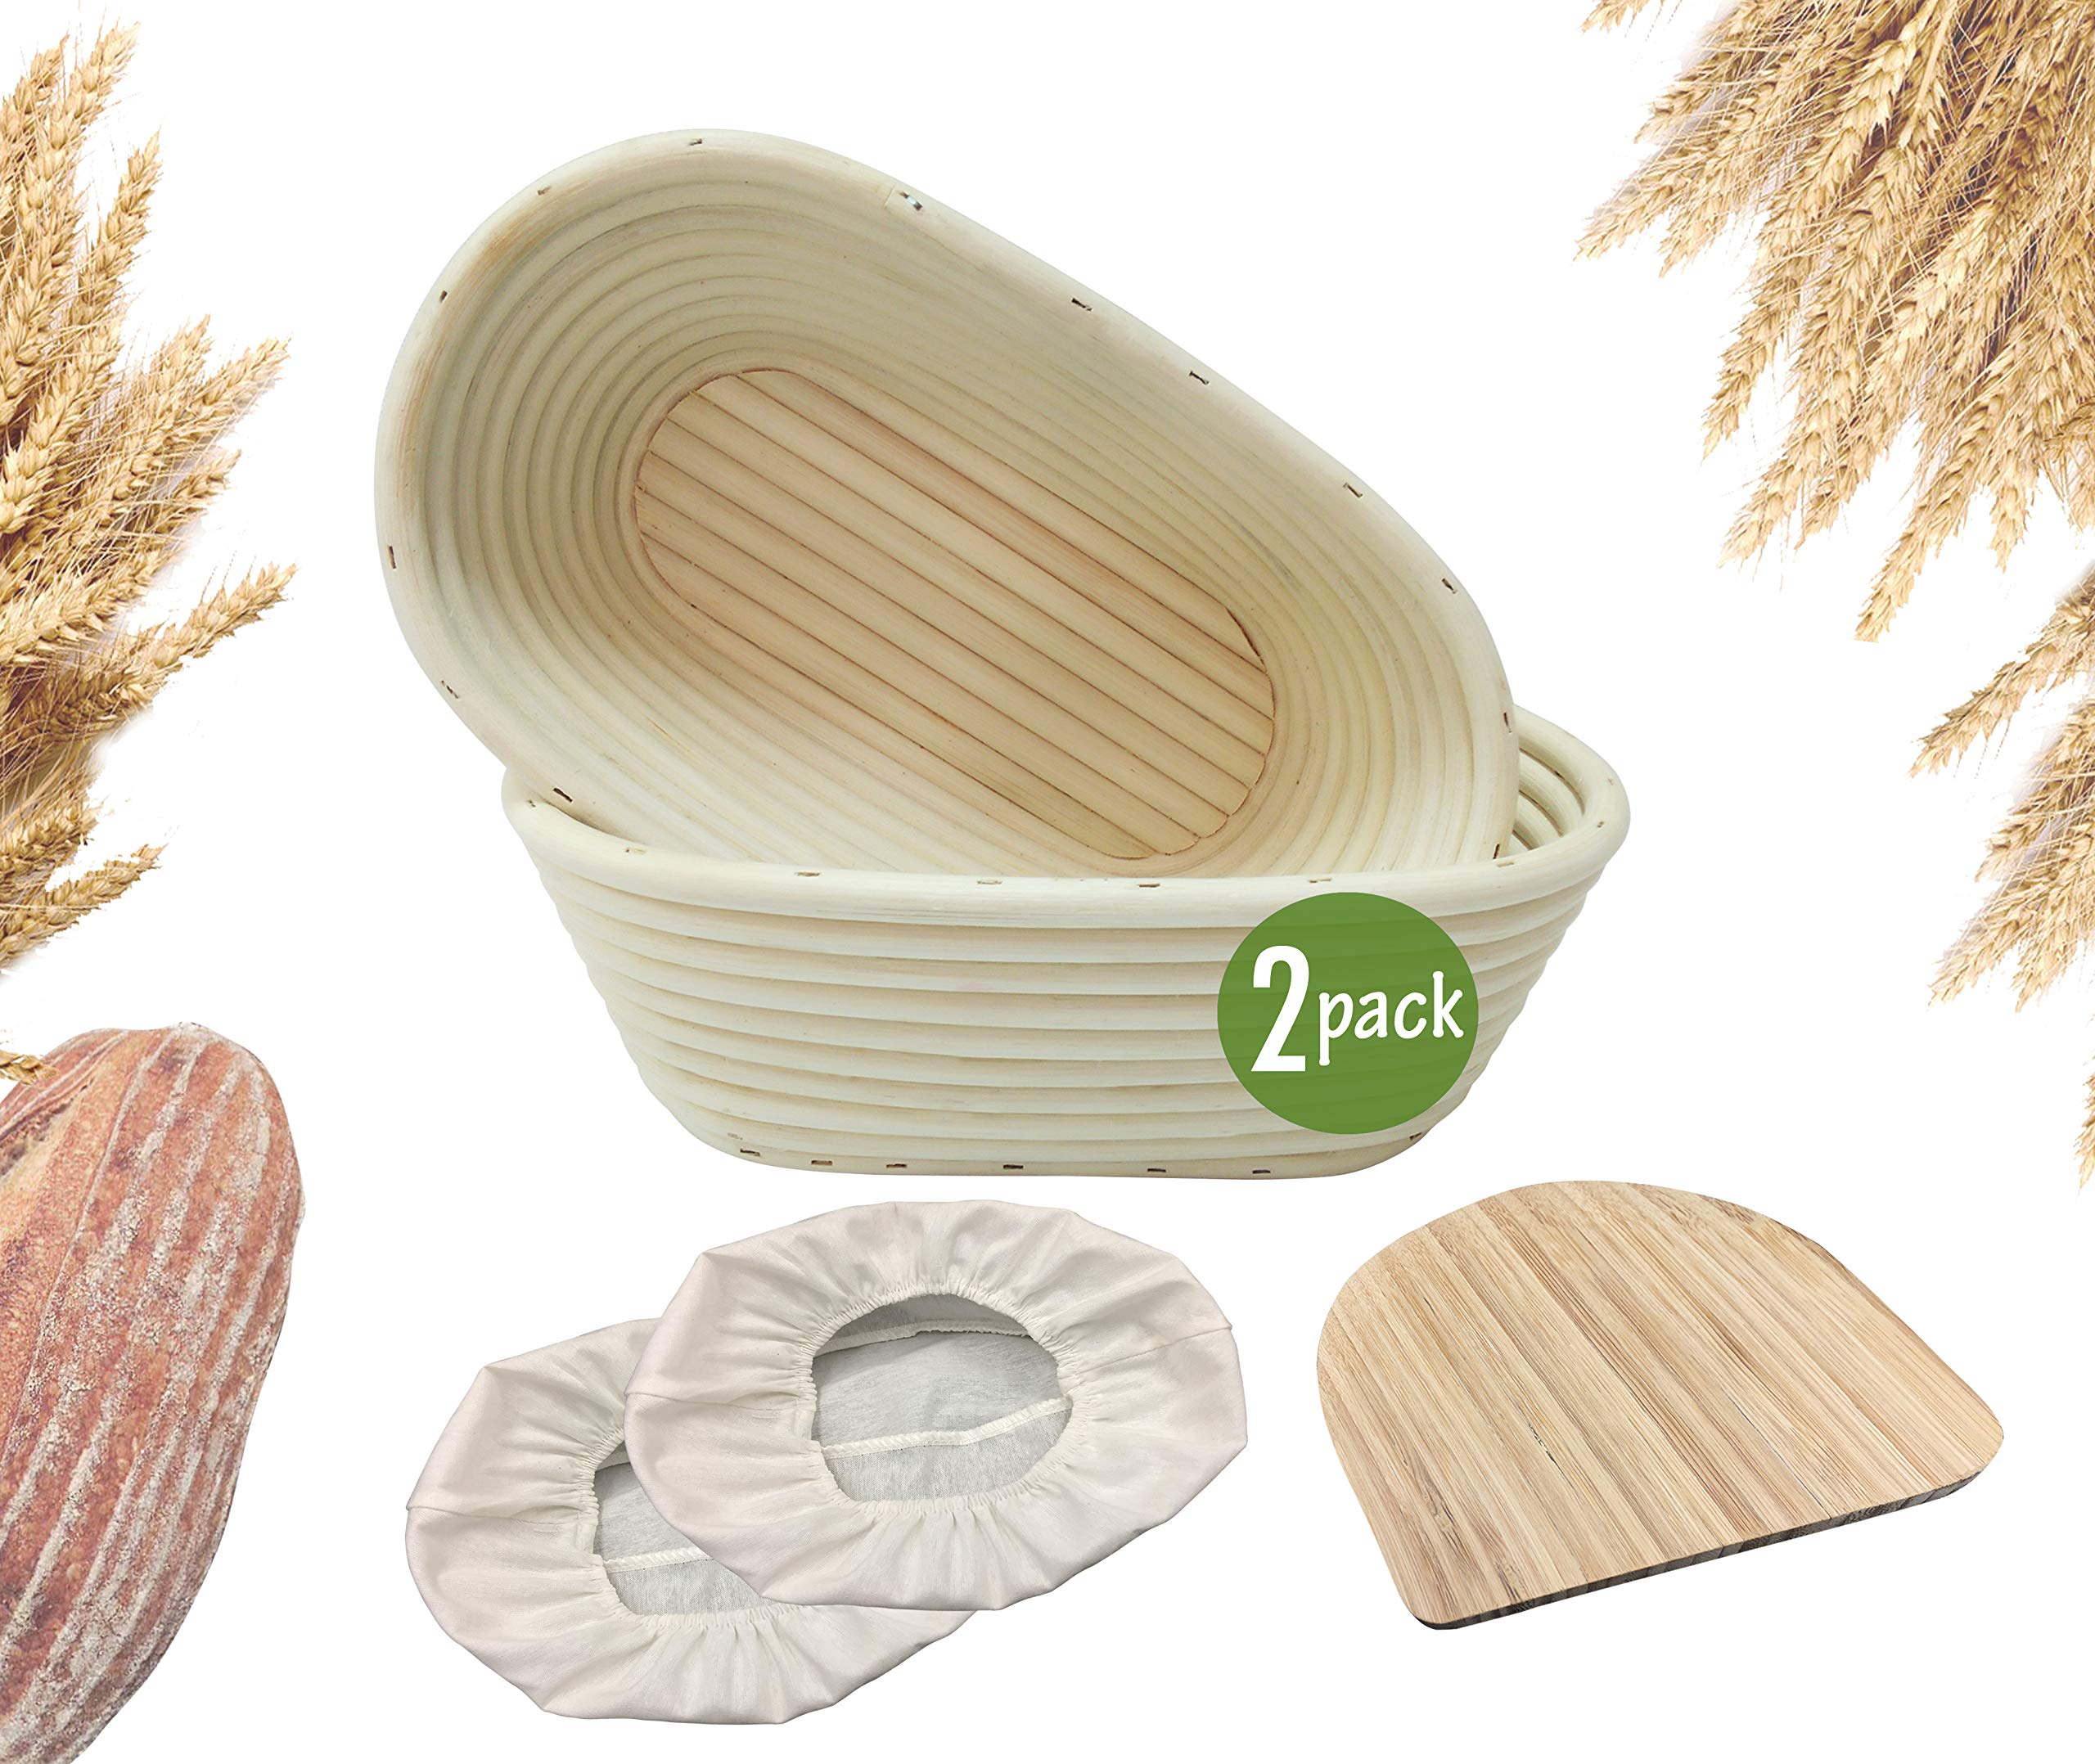 10 inch Oval Banneton Bread Proofing Basket Set of 2 for Sourdough Bread| Natural Rattan Cane Sourdough Proofing Basket with Bamboo Dough Scraper & Cloth Liner| Food-Safe Brotform Bread Proofing Bowls by Made Terra